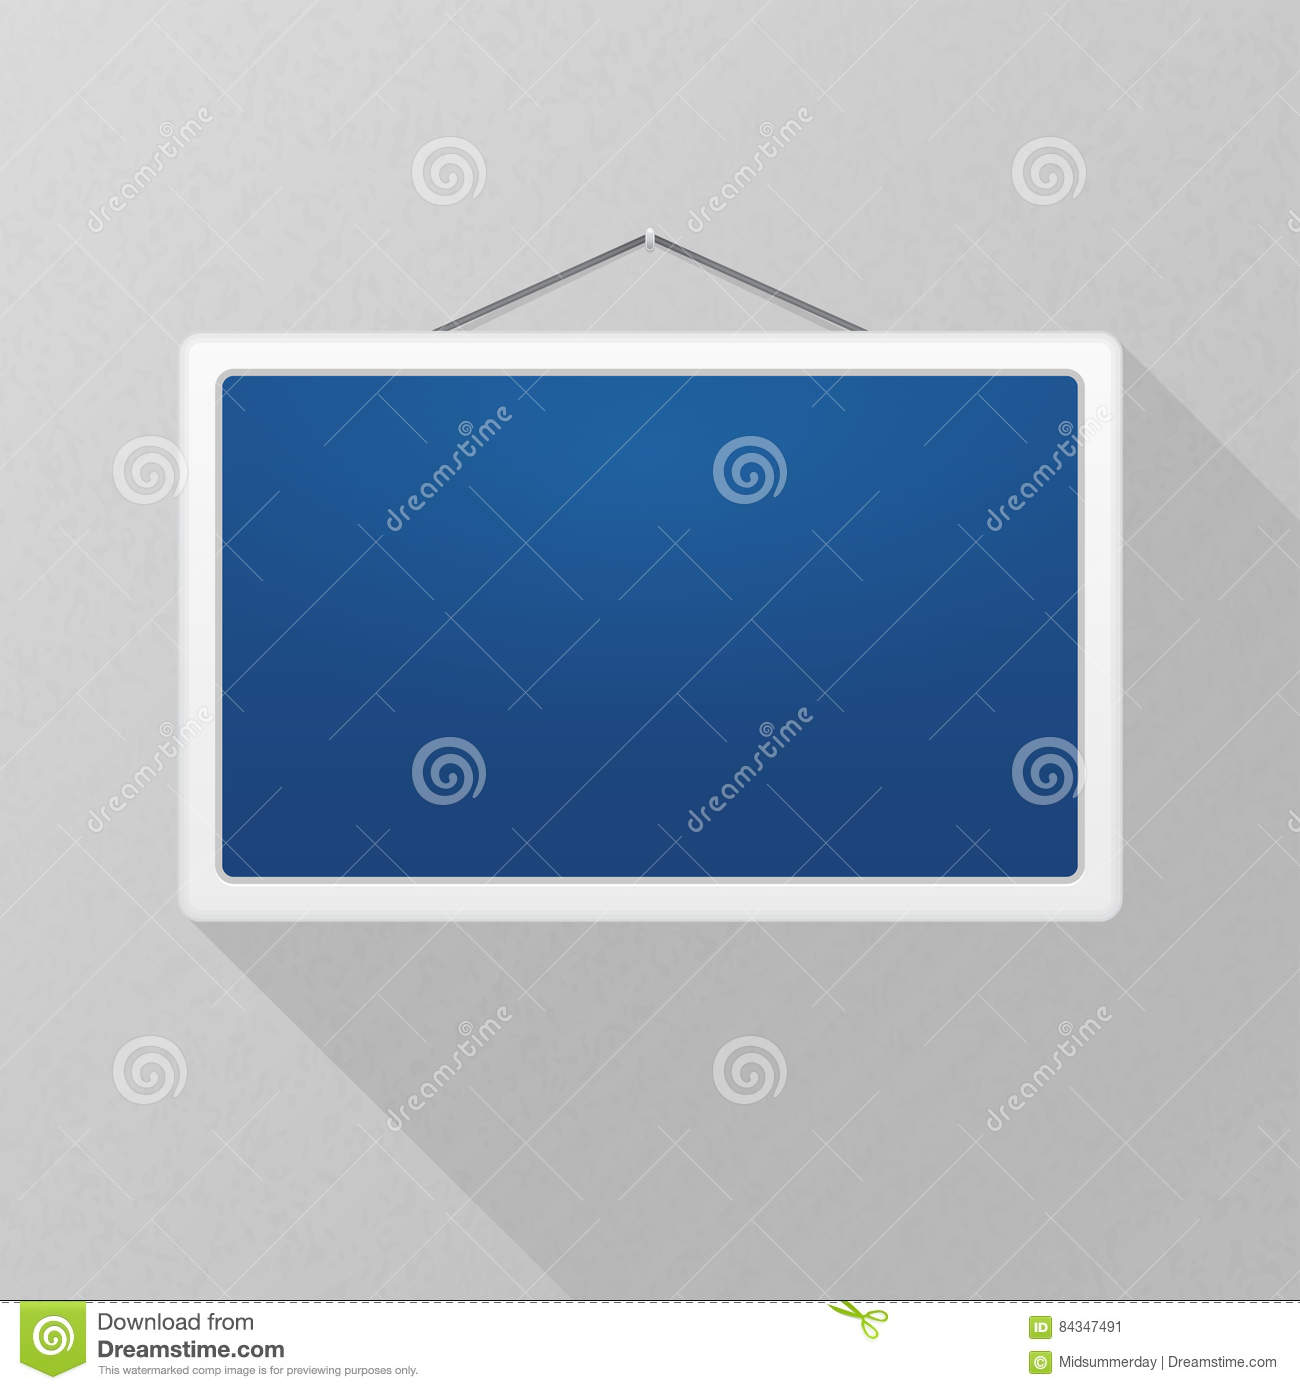 Vector mockup. Simple blue sign with long shadow hanging on a gray office wall. White rectangular frame. Empty blank.